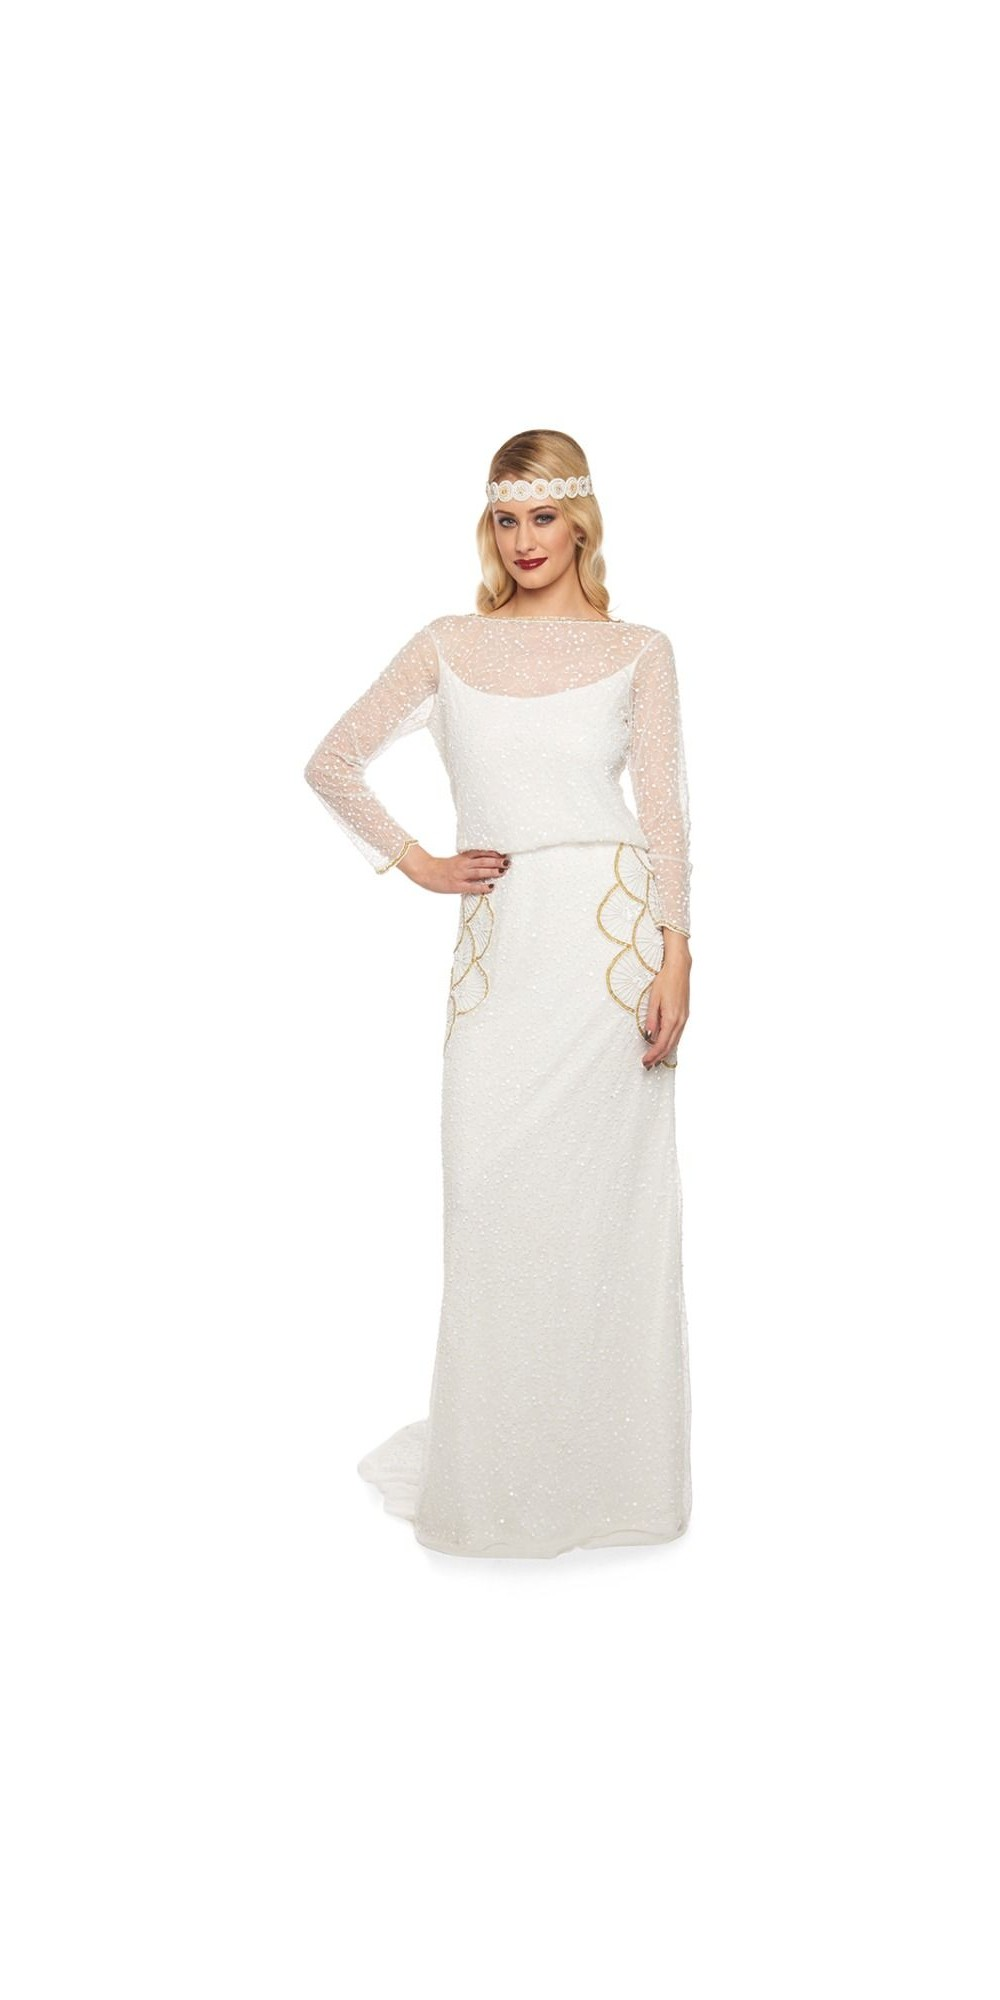 Great gatsby wedding gown in white gold for The great gatsby wedding dresses